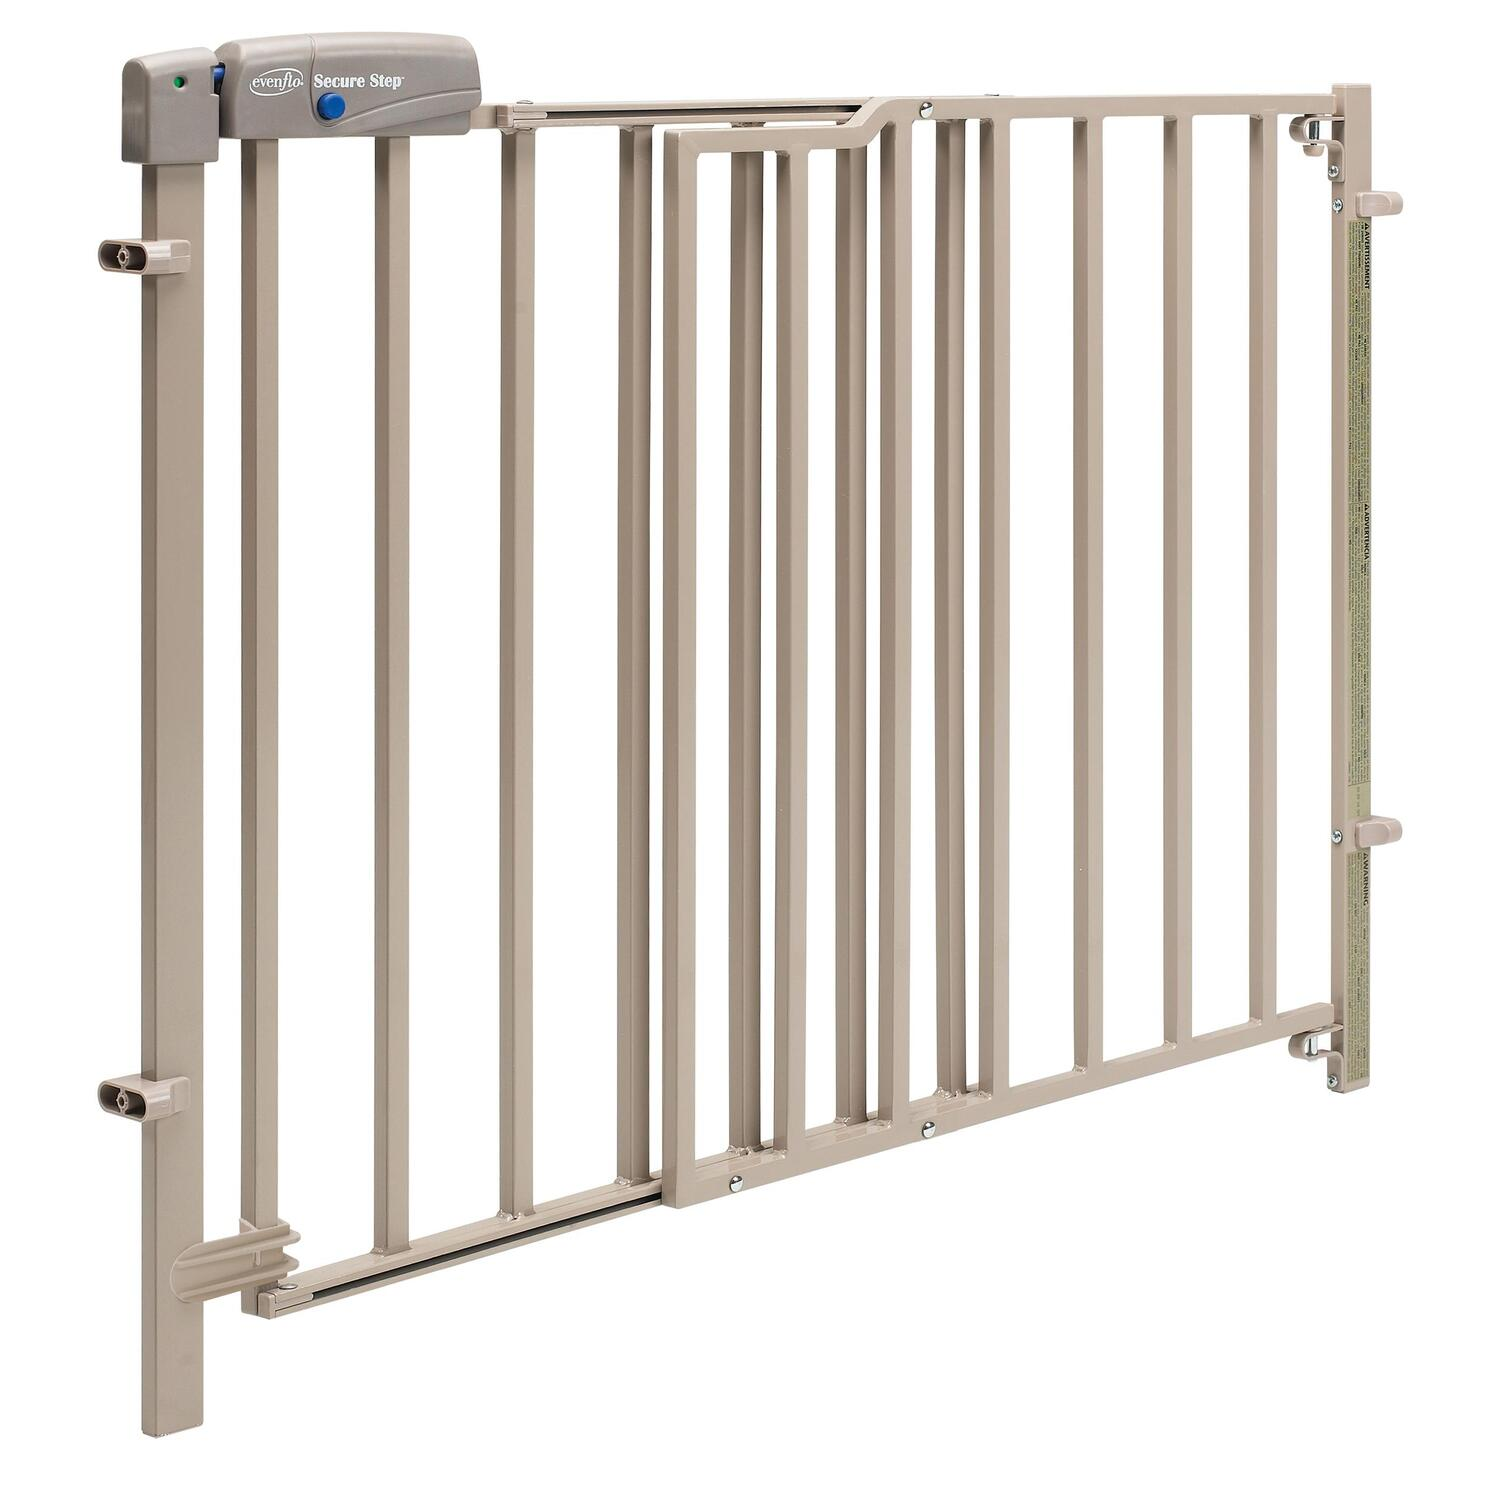 Evenflo Secure Step Top Of Stair Gate Taupe By Oj